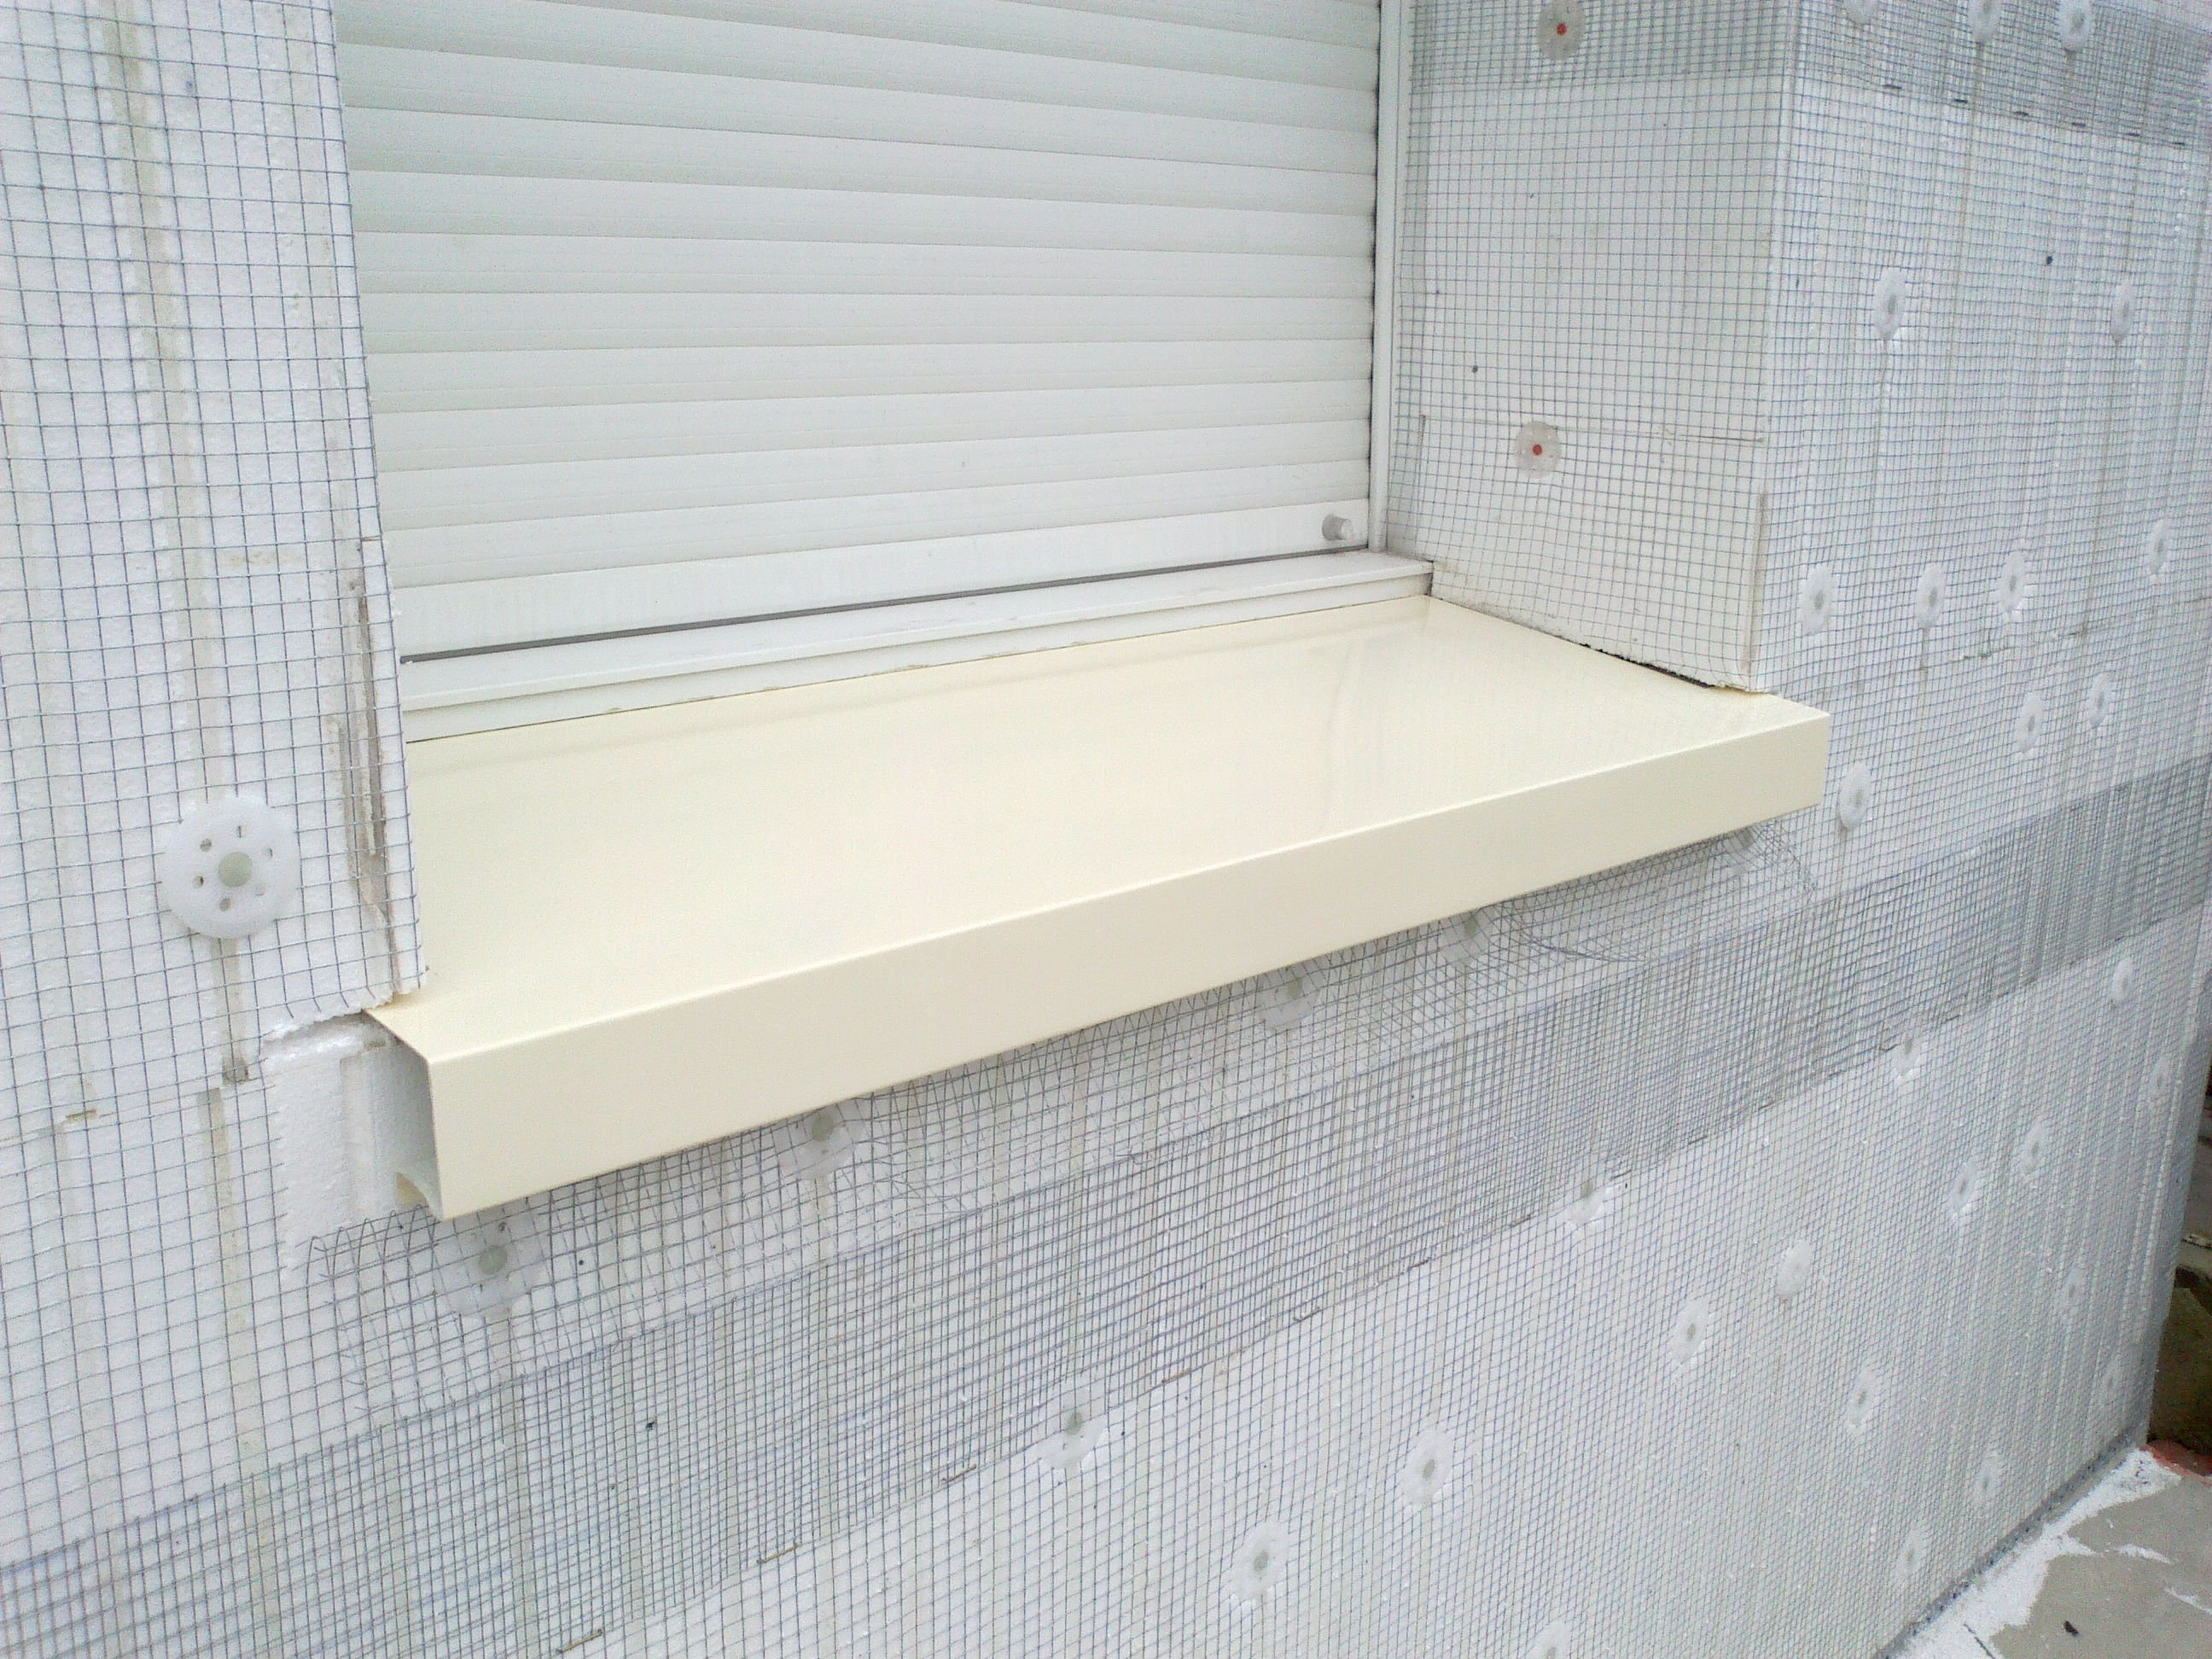 Habillage fenetre pvc renovation les - Fenetre pvc renovation ...